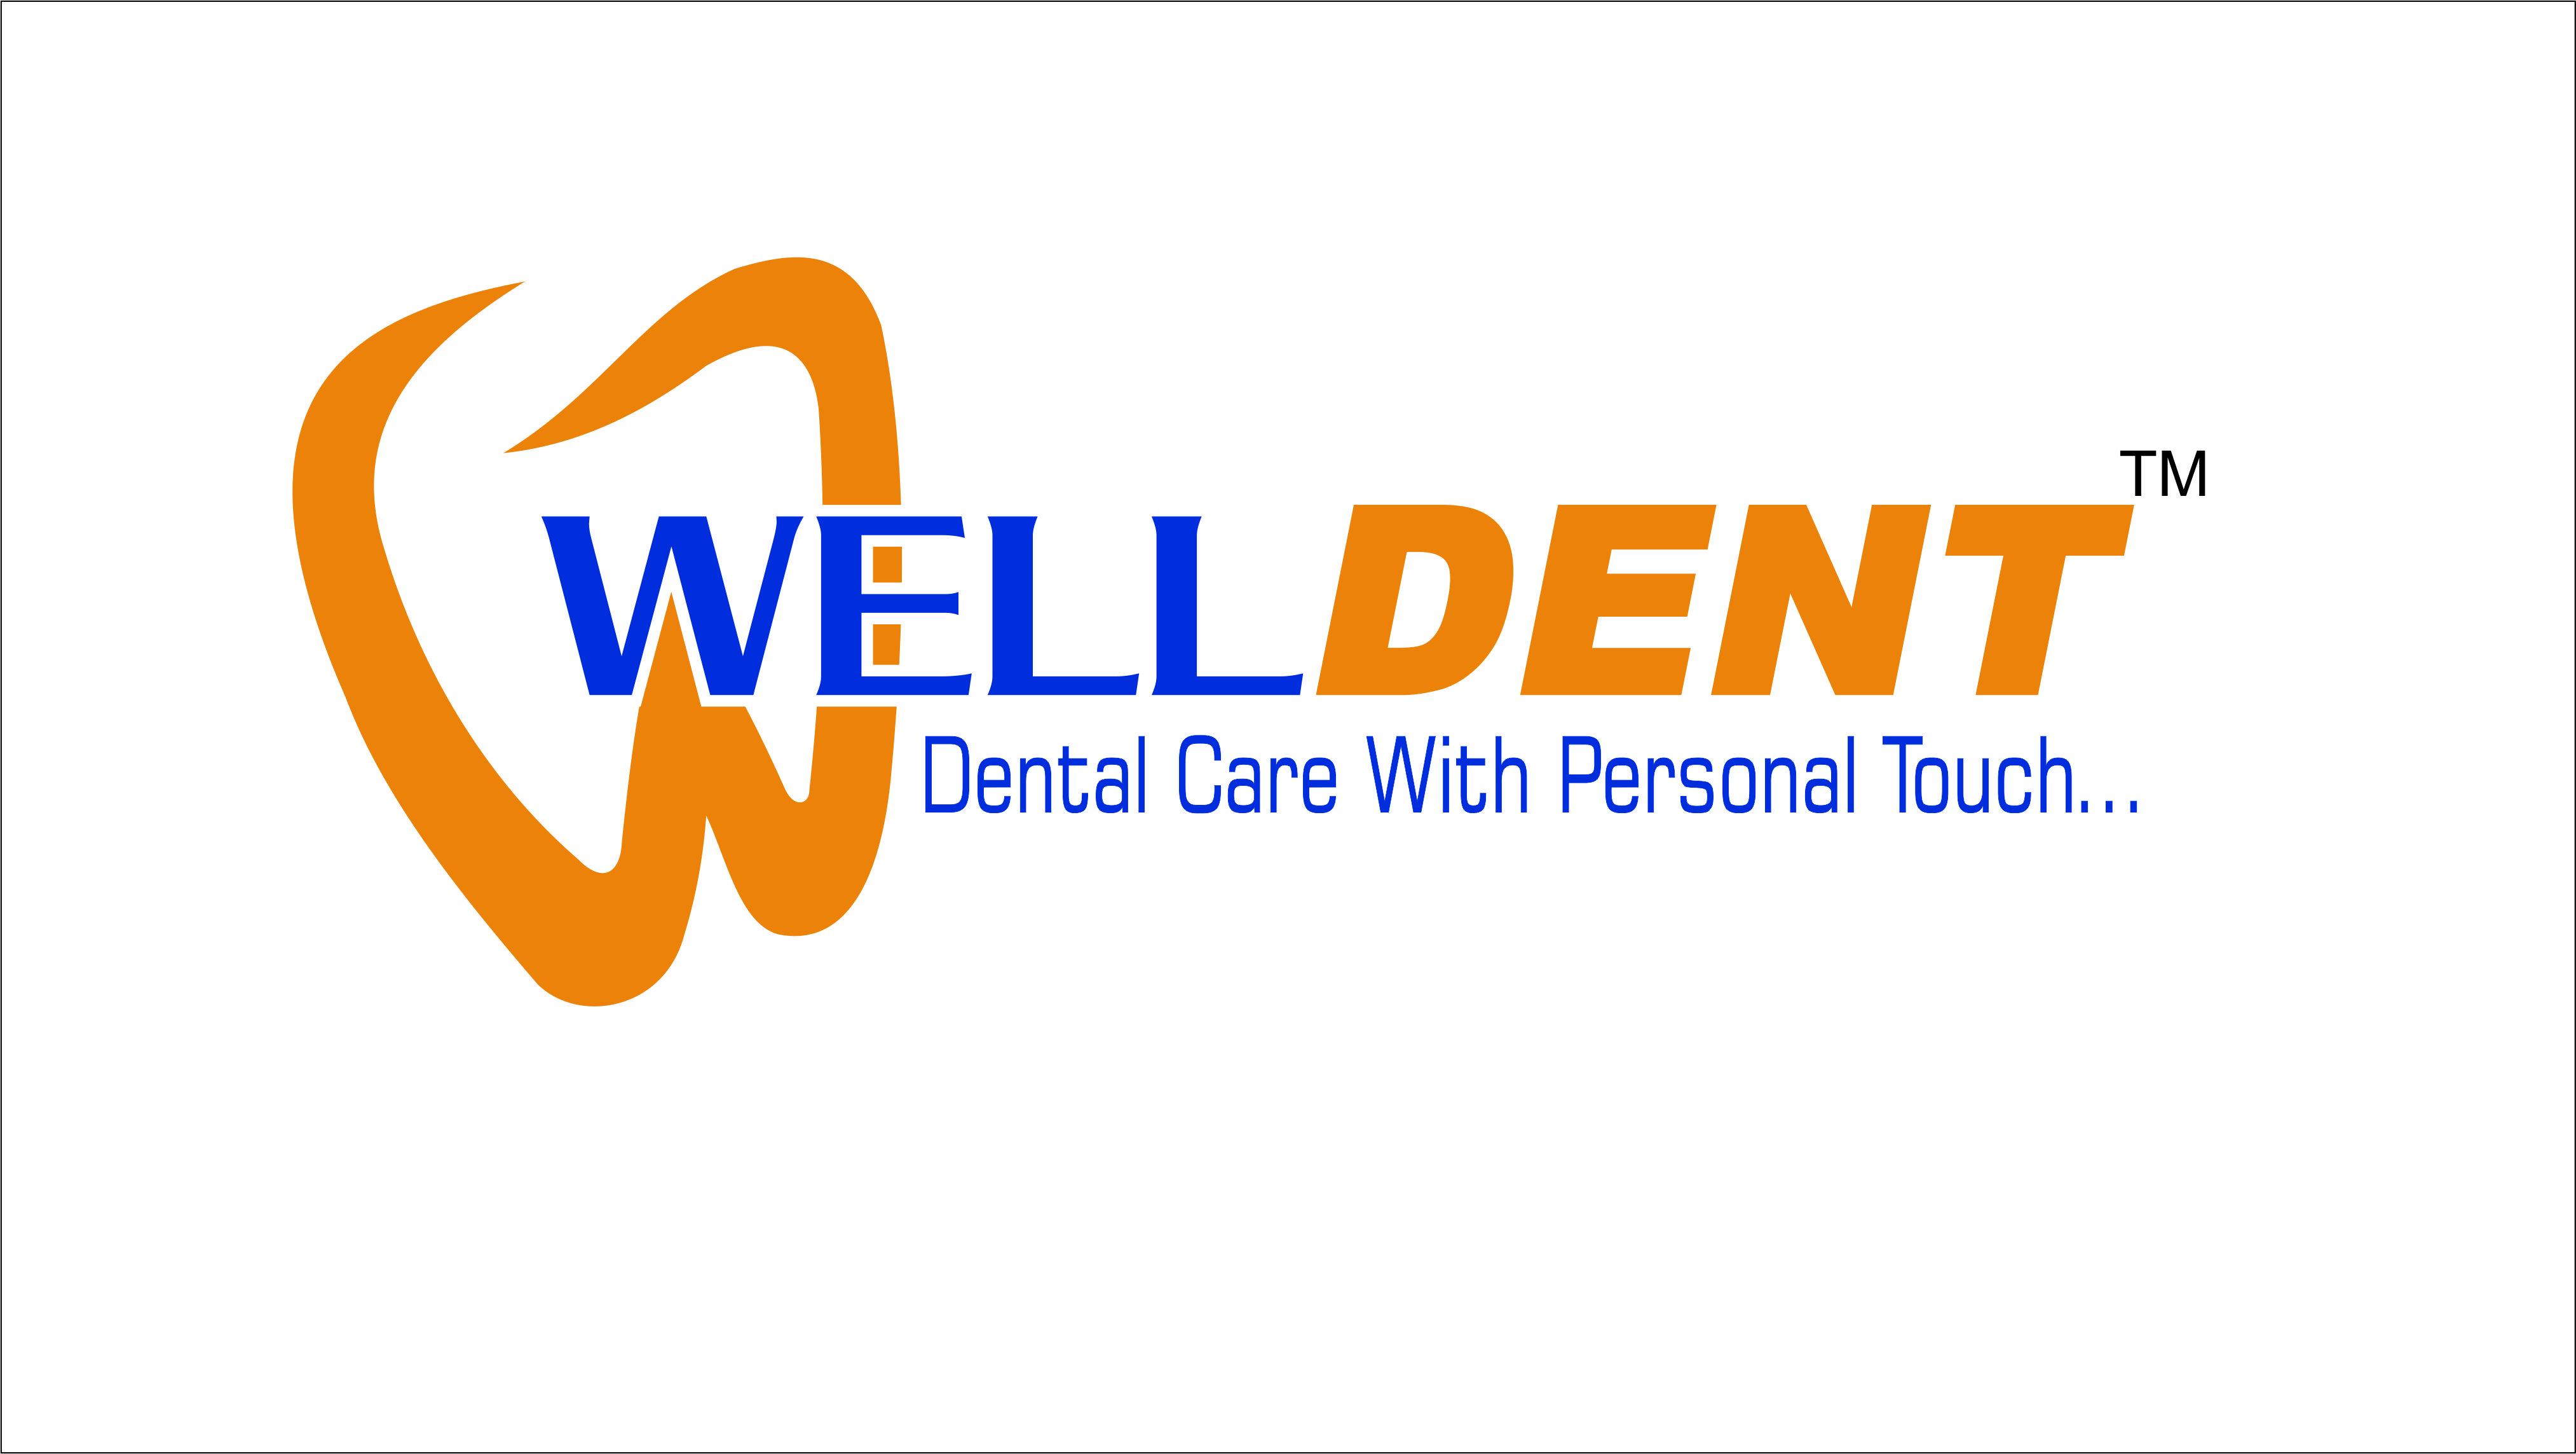 Welldent Family Dental Care And Microdentistry Centre